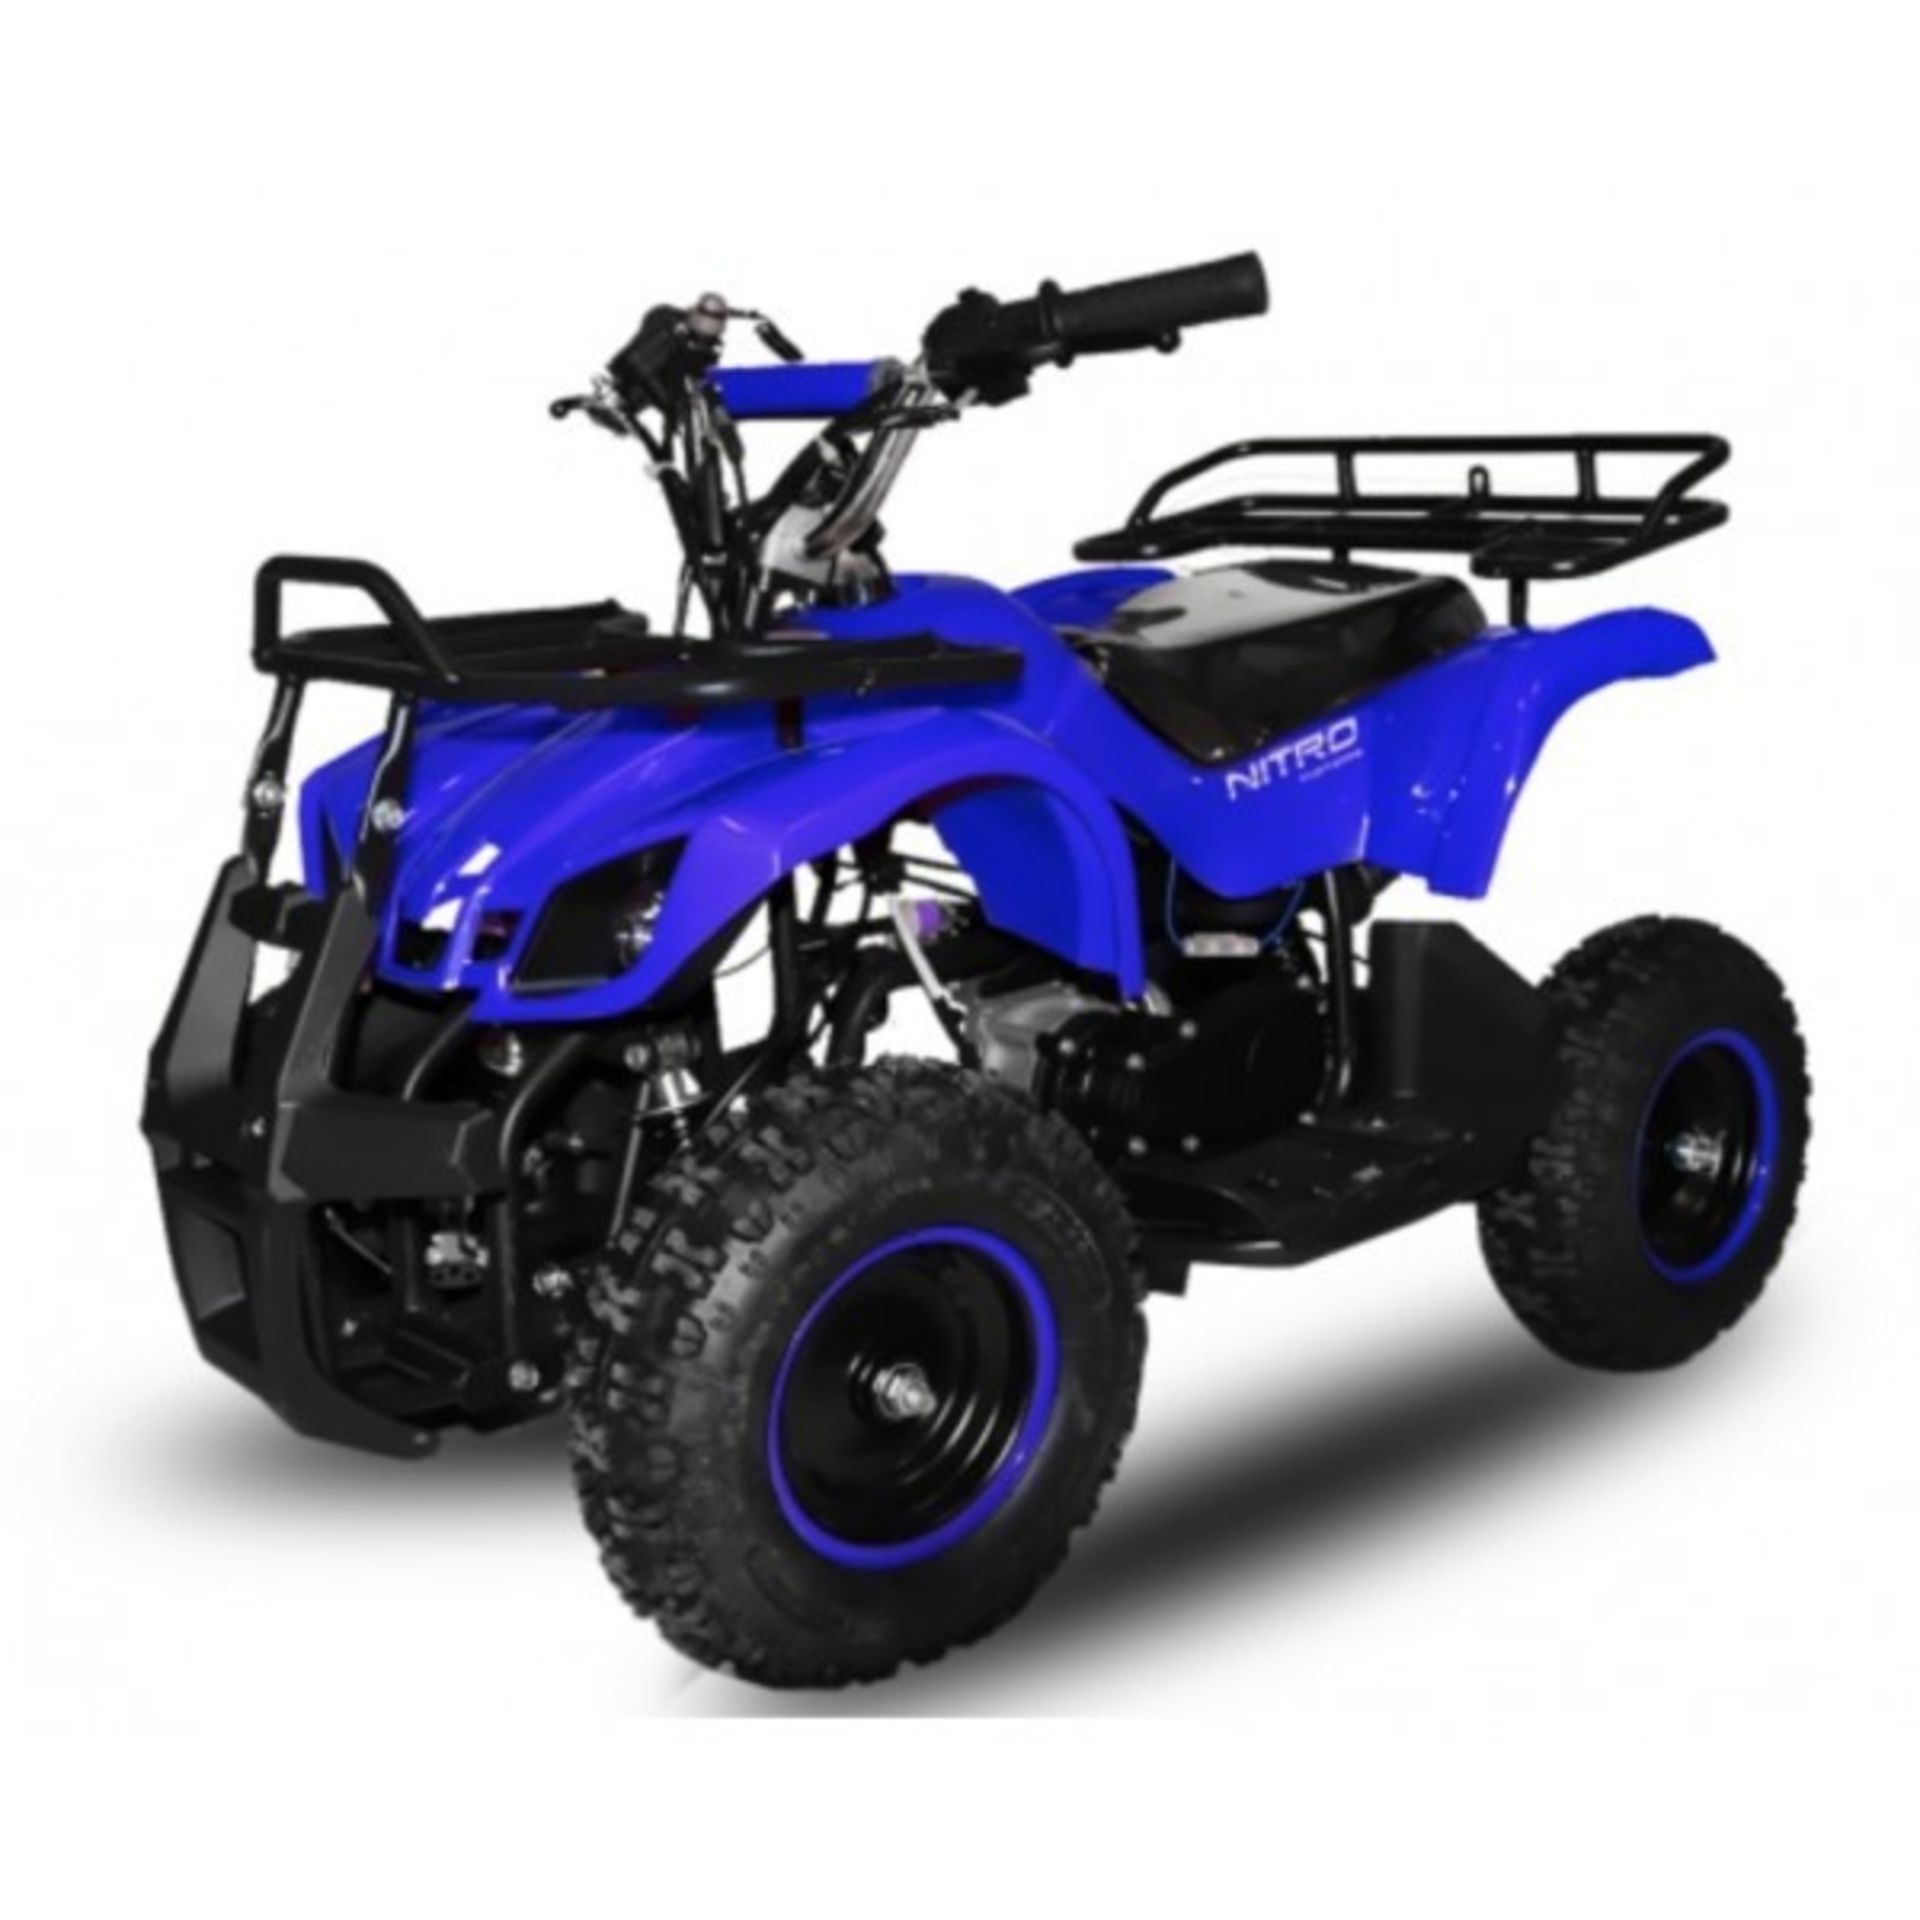 Lot 50000 - V Brand New 50cc Mini Quad Bike FRM - Colours May Vary - Front & Rear Frames - Picture May Vary From